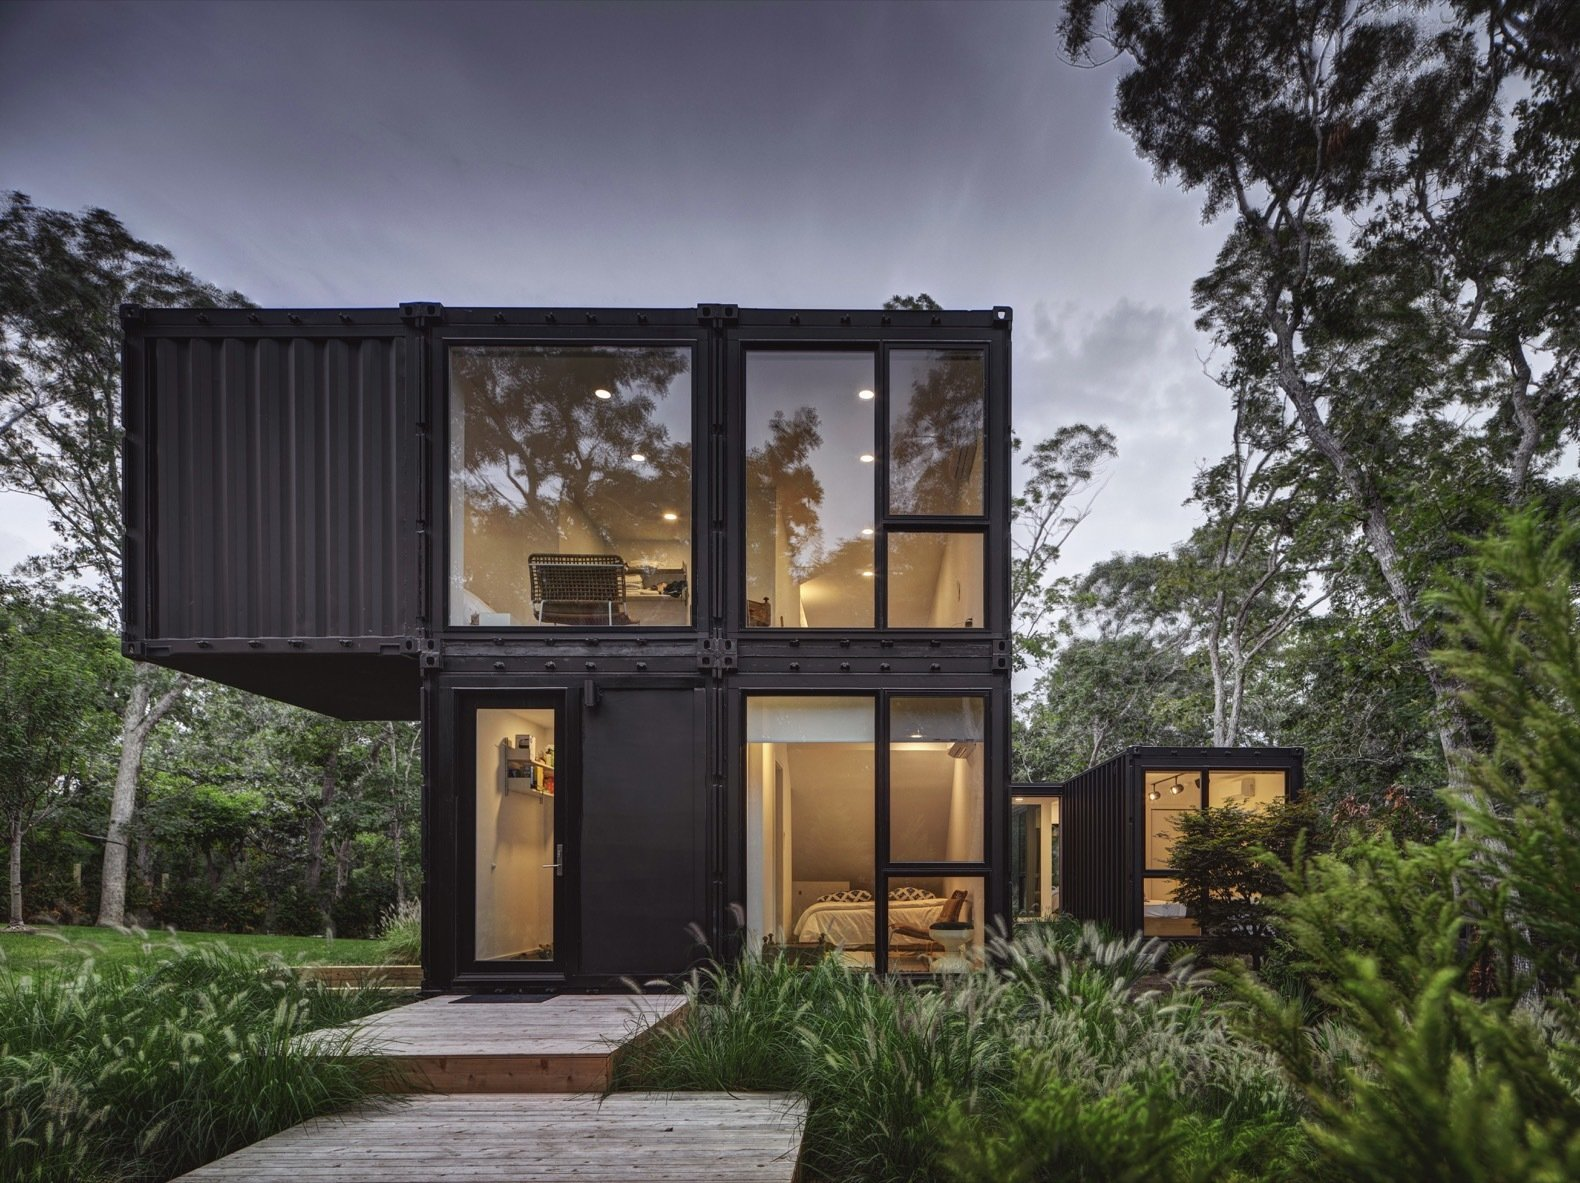 Amagansett Modular House by MB Architecture exterior